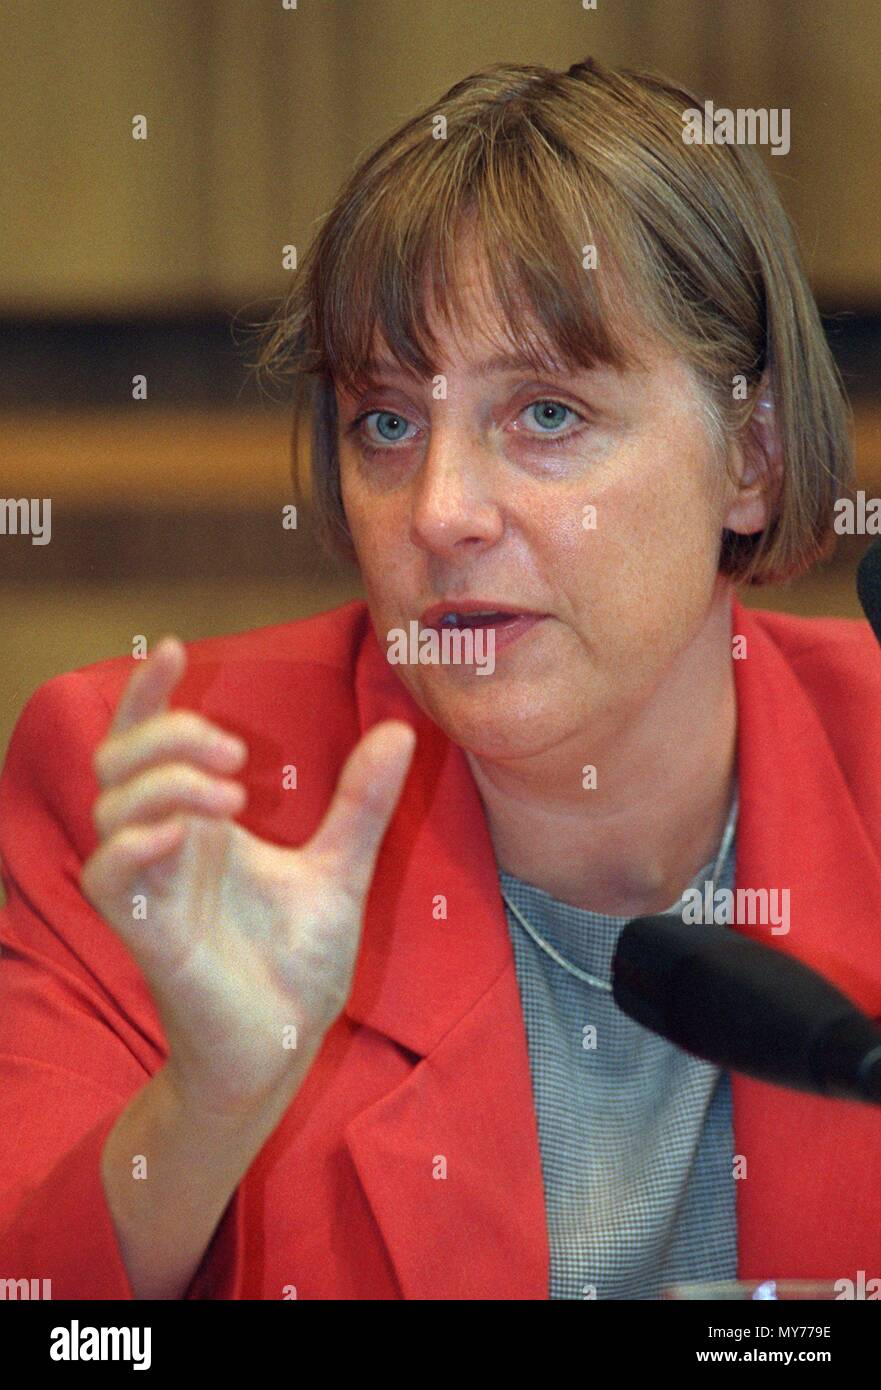 German Environment Minister Angela Merkel (CDU) answers journalists' questions during a press conference on the presentation of the Federal Environment Agency's annual report for 1997 in Bonn, Germany, on 1 September 1998. | usage worldwide - Stock Image